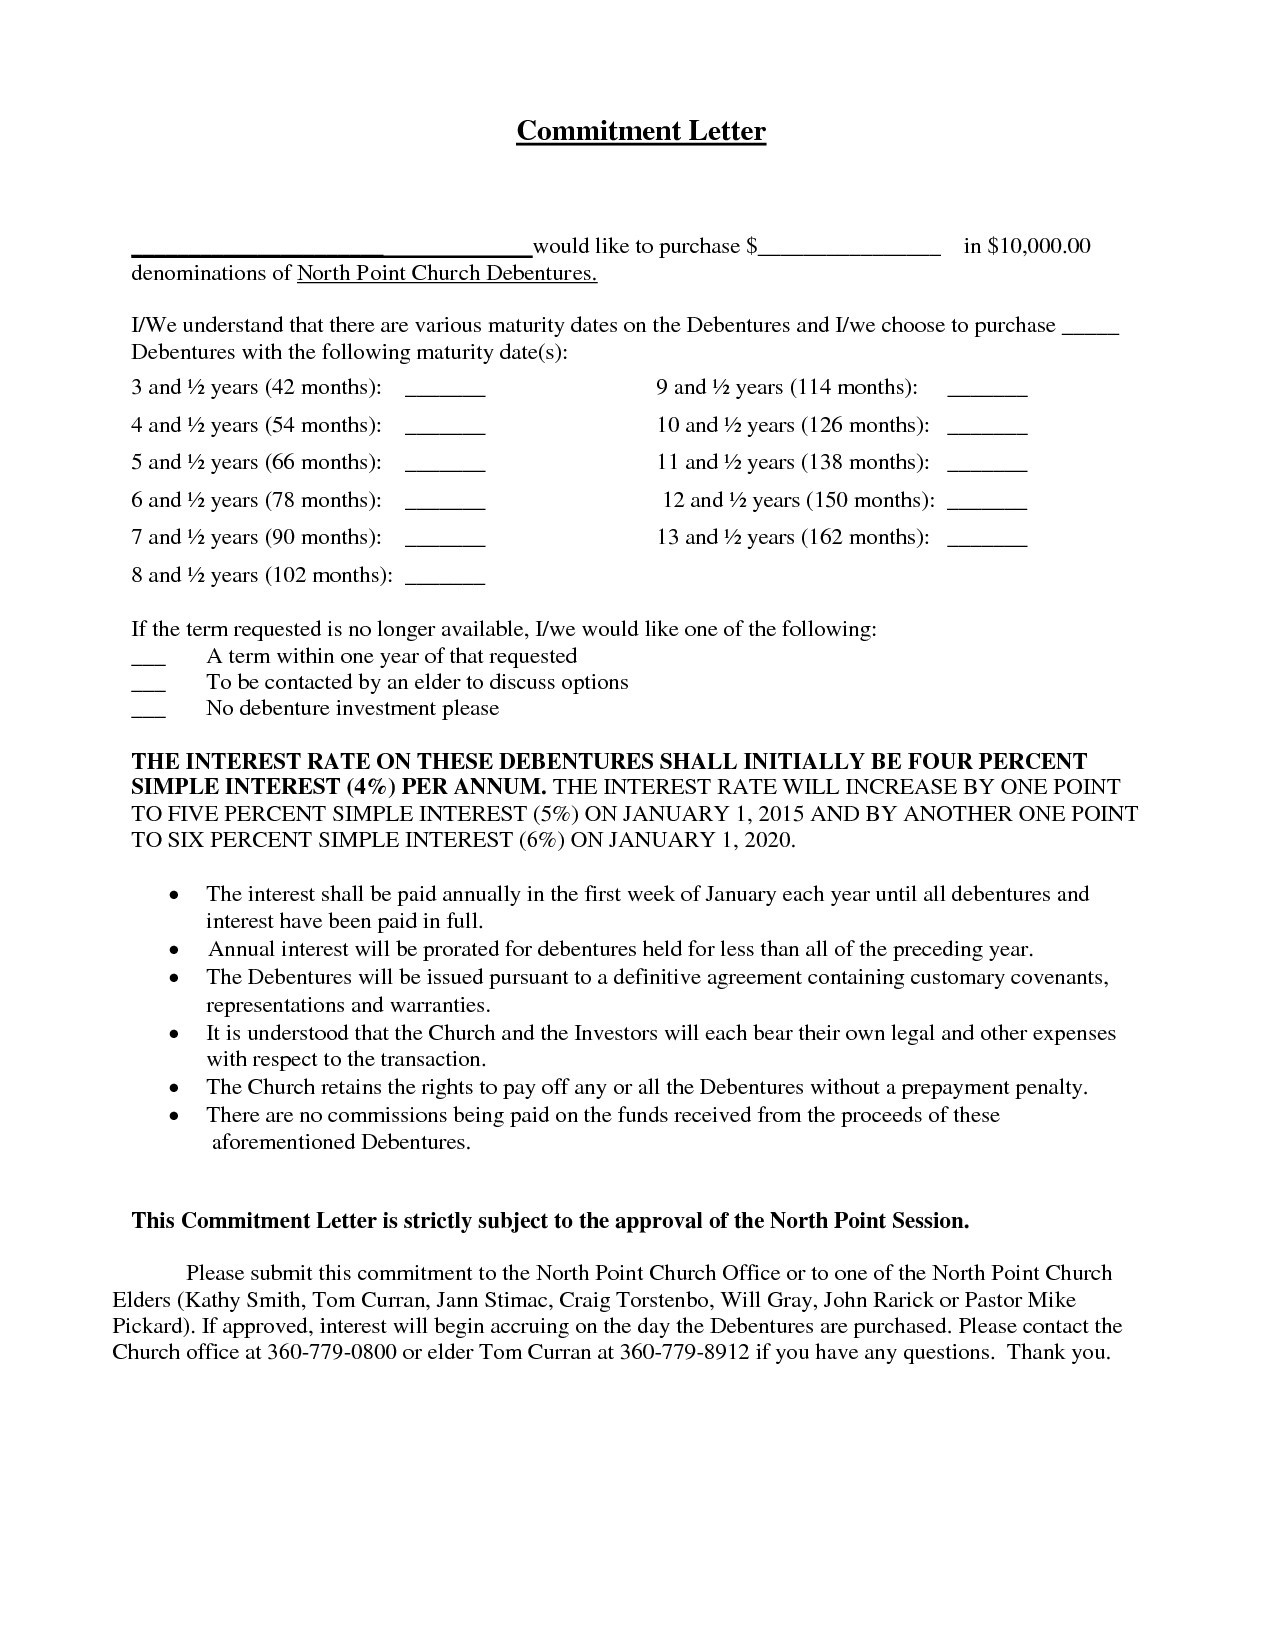 Mortgage Commitment Letter Template - Mitment Letter Sample Copy Employee Mitment Letter Sample Valid